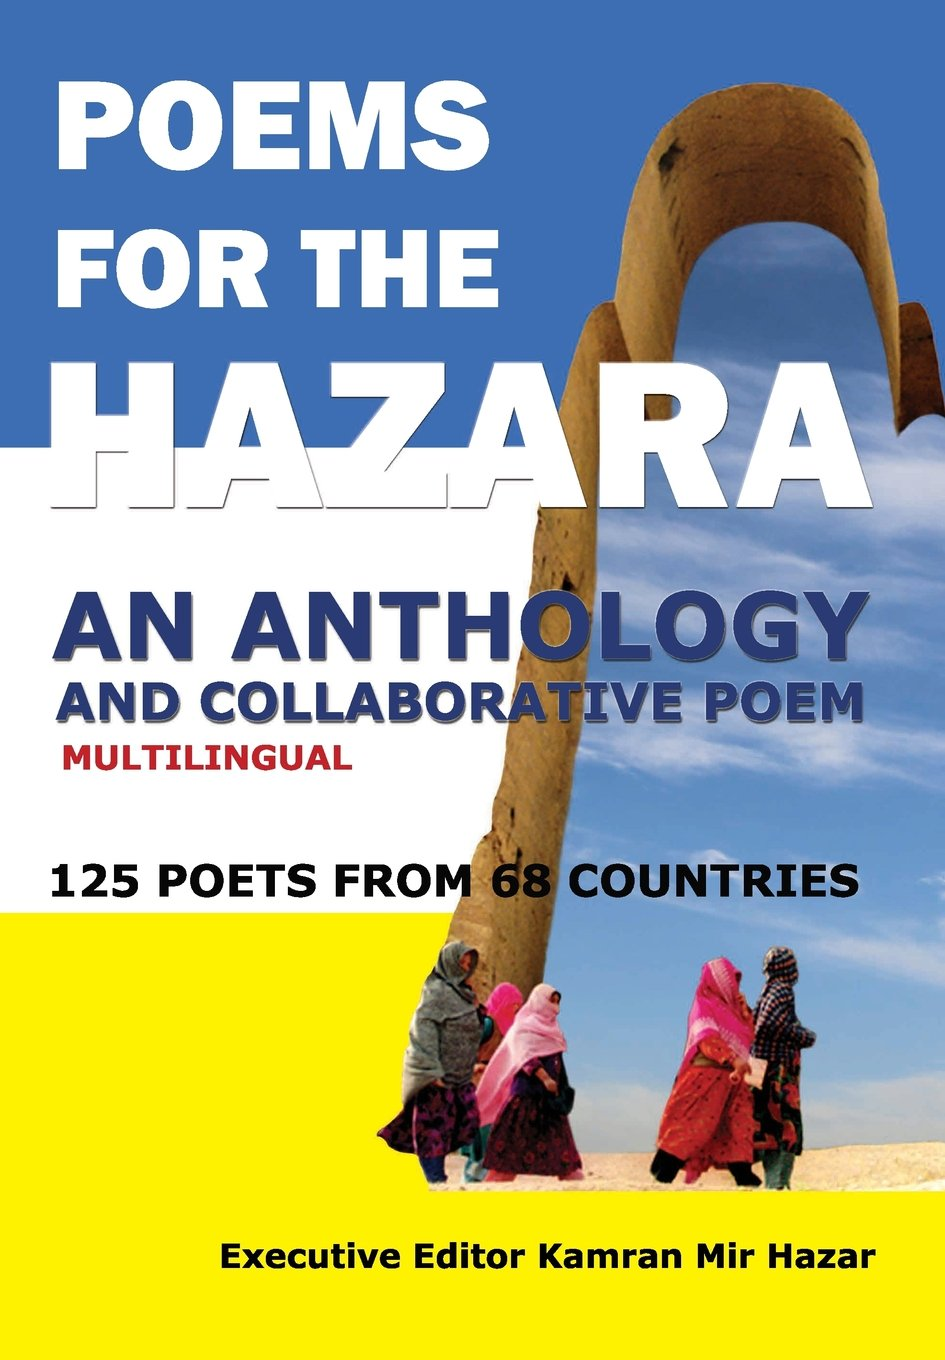 Poems for the Hazara: A Multilingual Poetry Anthology and Collaborative Poem by 125 Poets from 68 Countries ebook